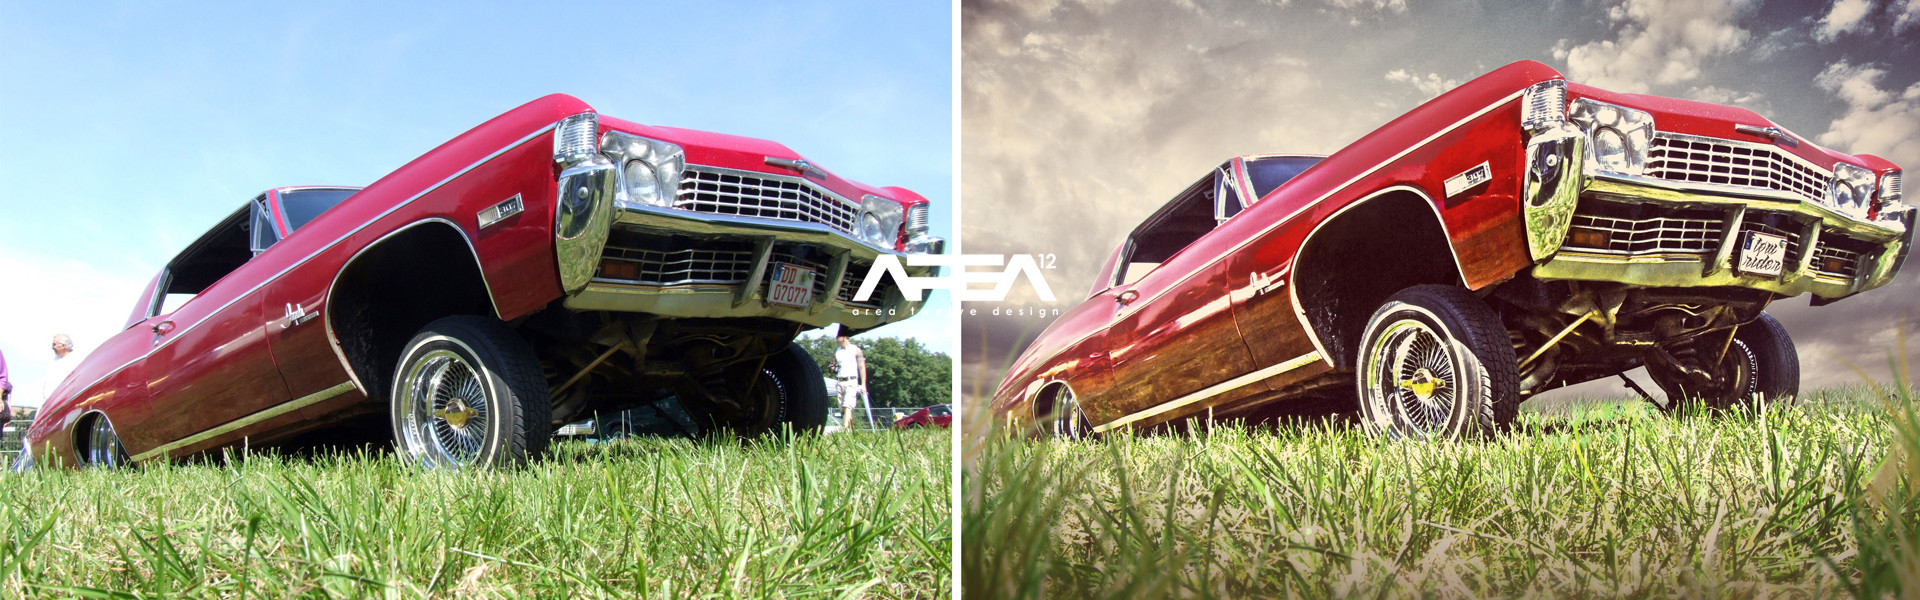 before_after_lowrider